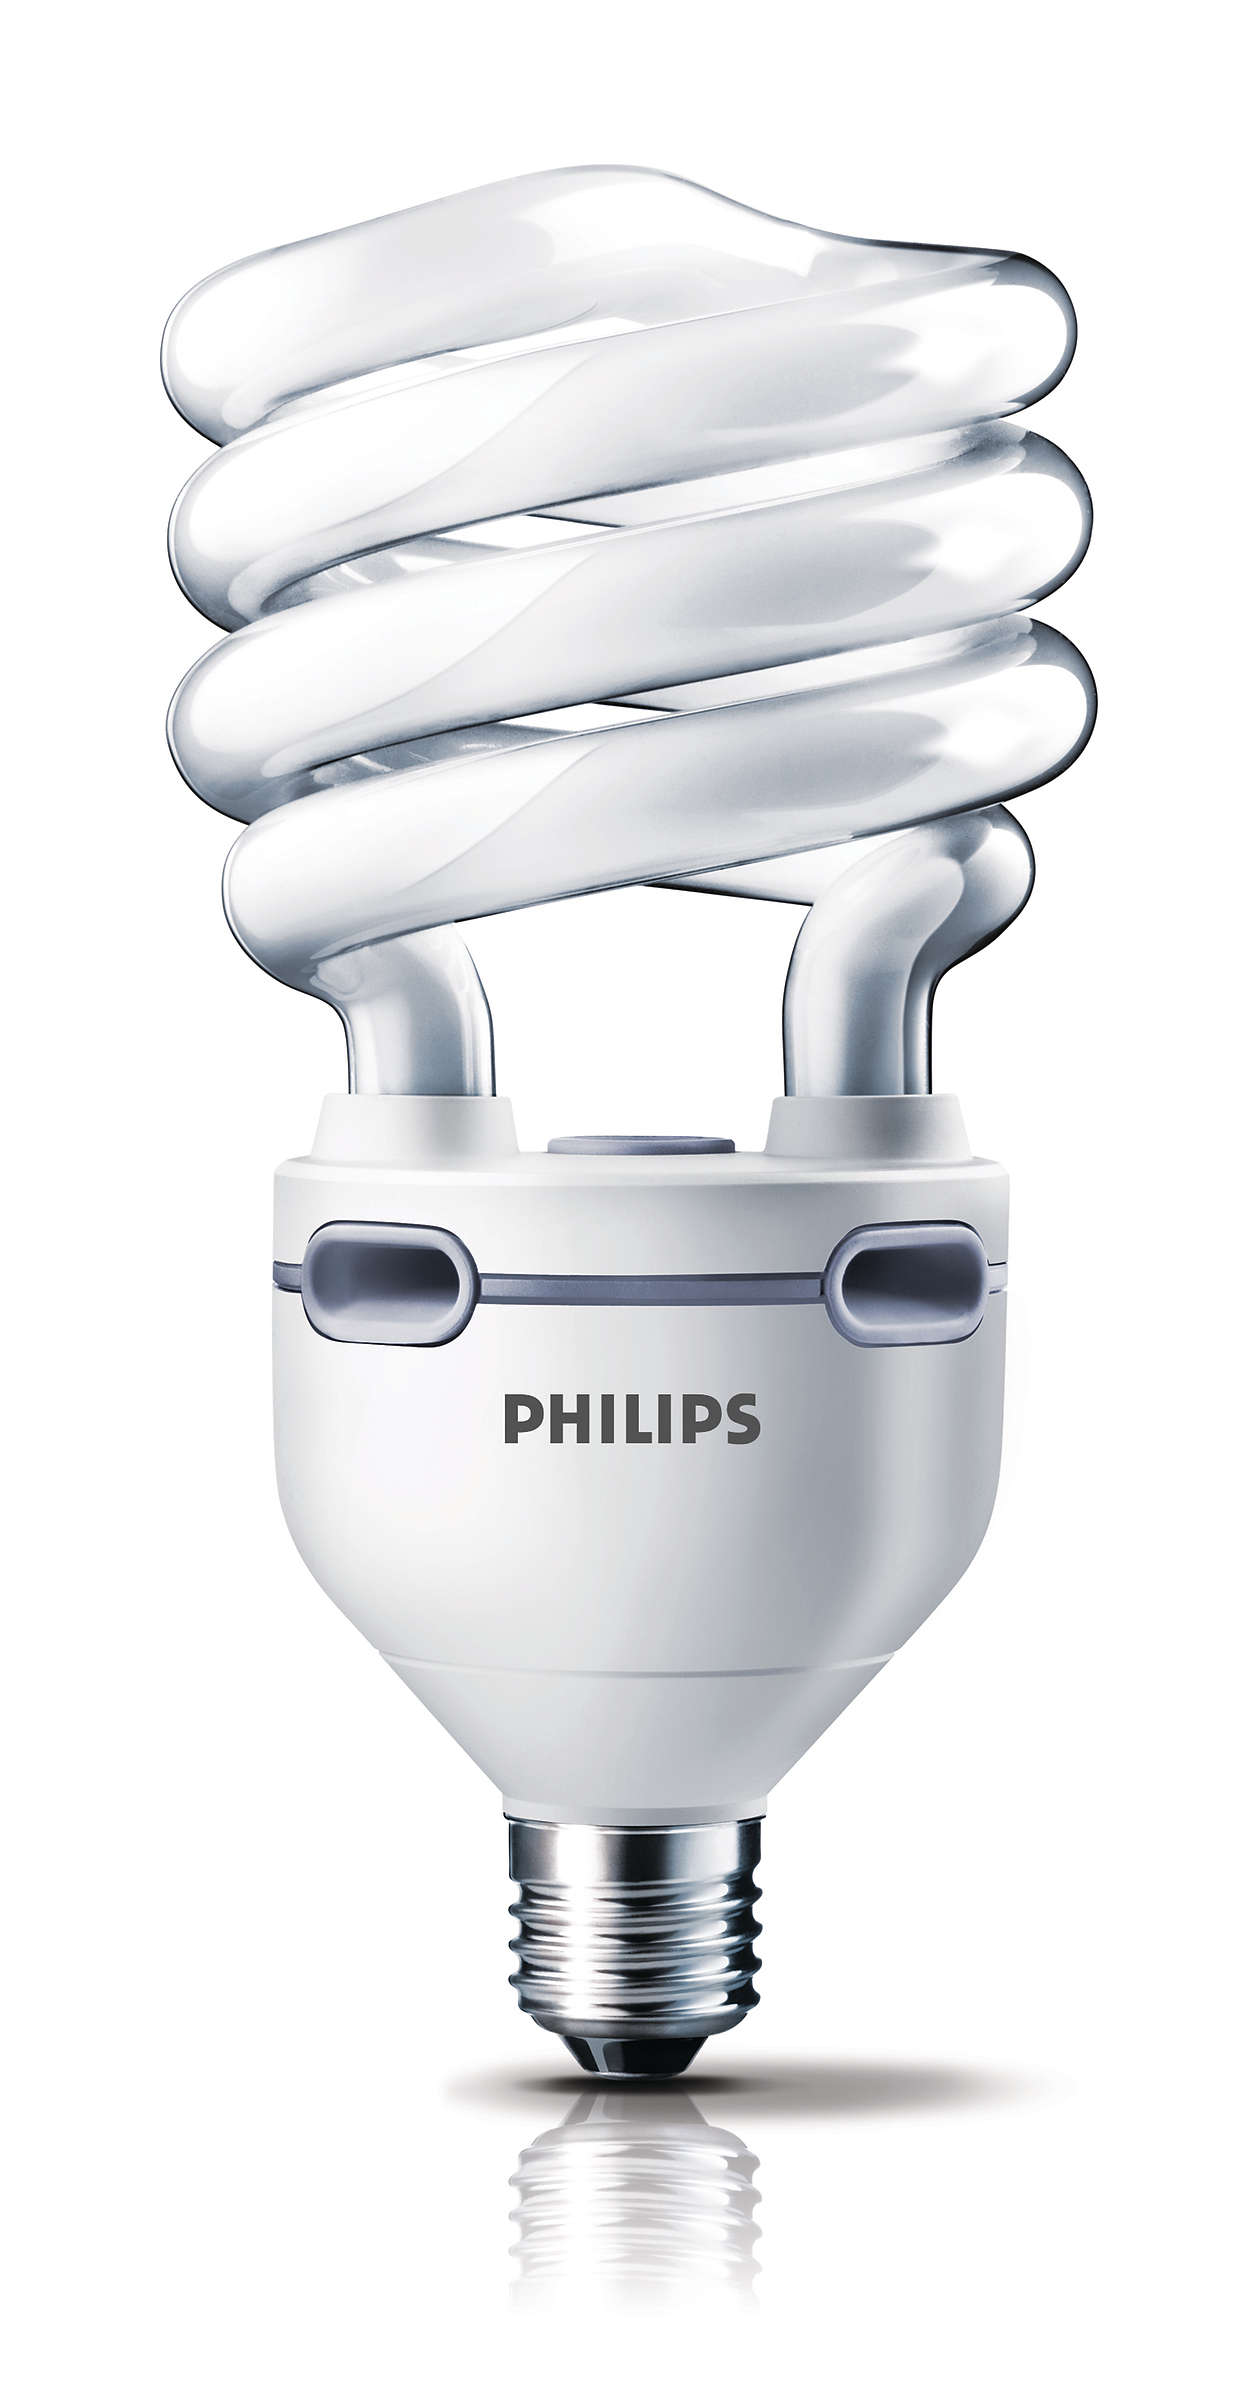 High lumen output for professional use